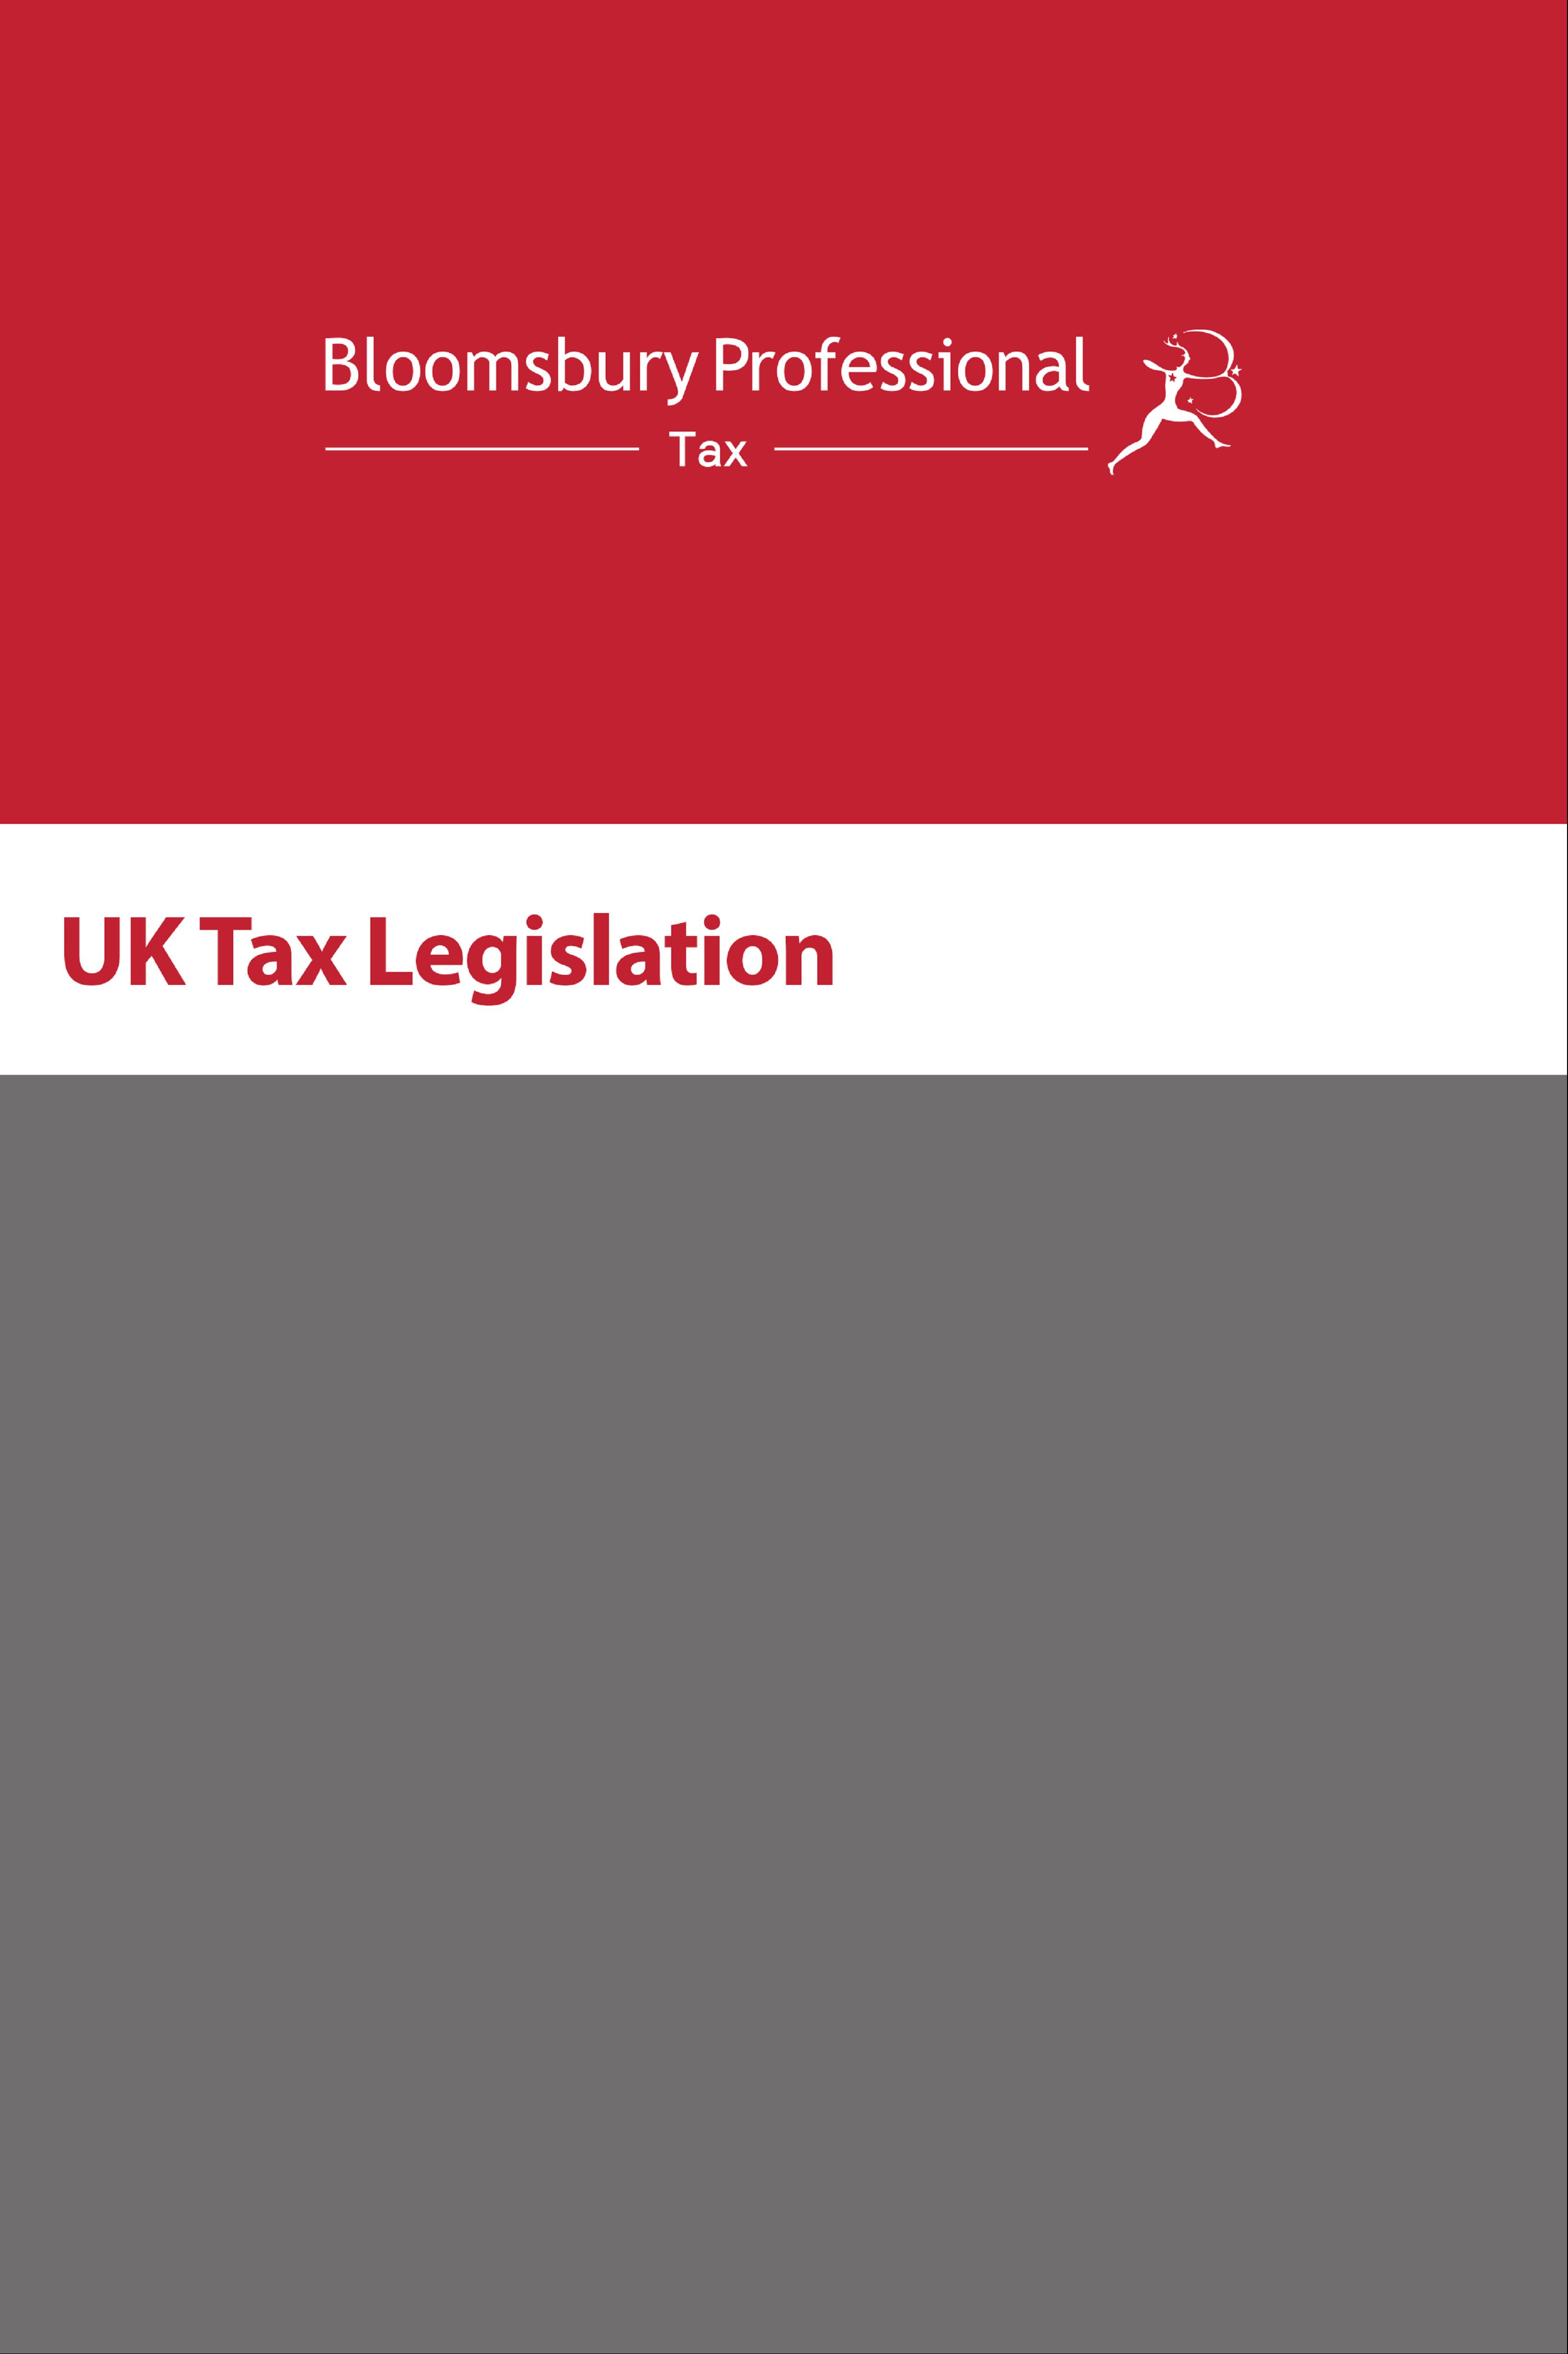 UK Tax Legislation